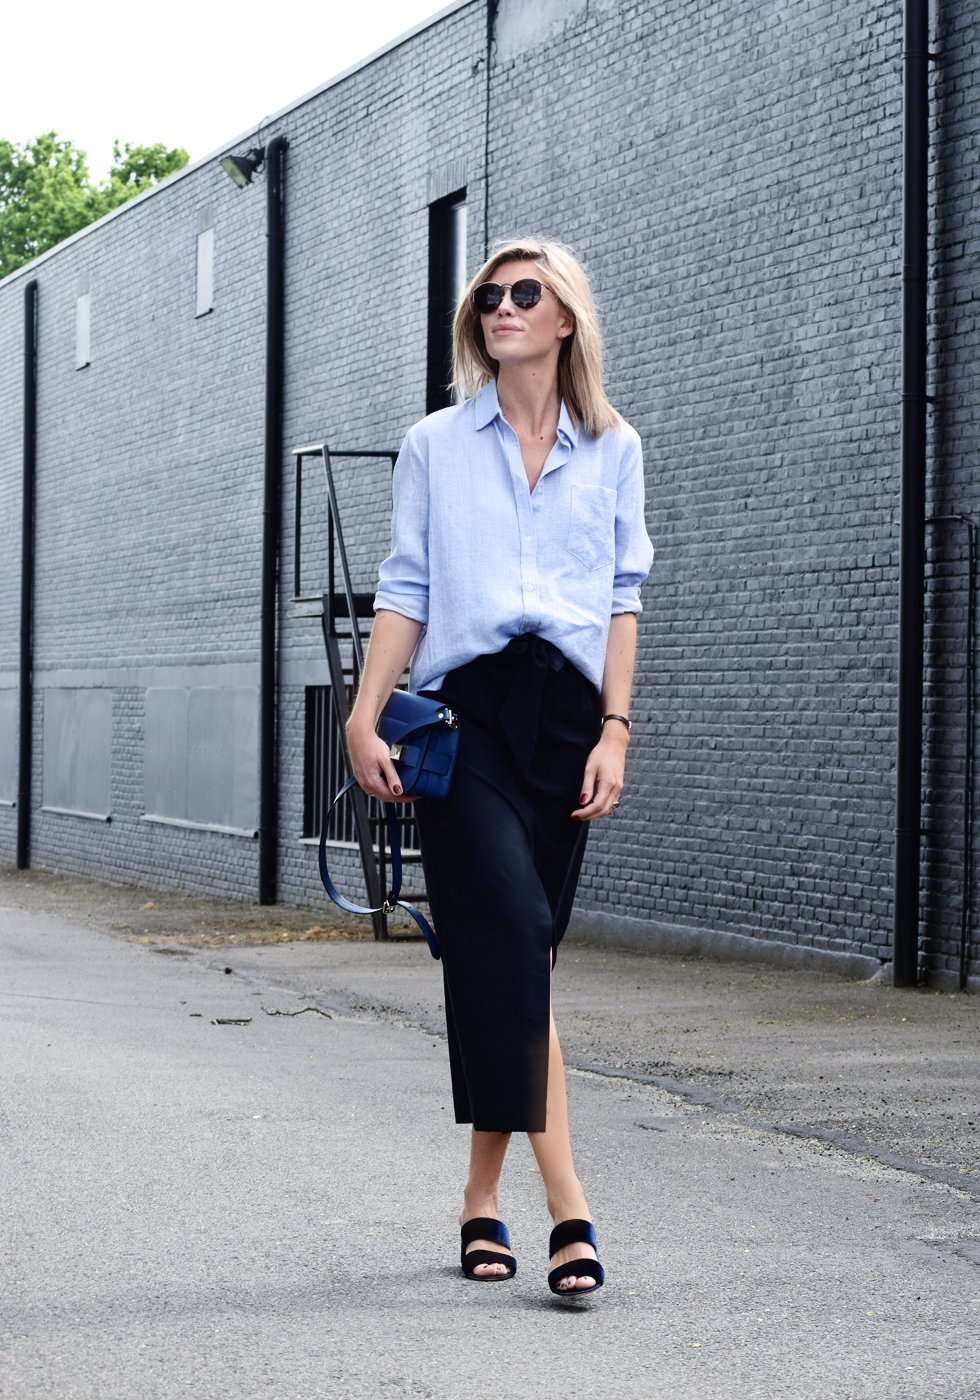 Outfit of the day, Liv The Label, Nanushka, Baume et Mercier, Proenza Schouler, Dior, Sofie's Choice, ootd, style, fashion, blogger, summer